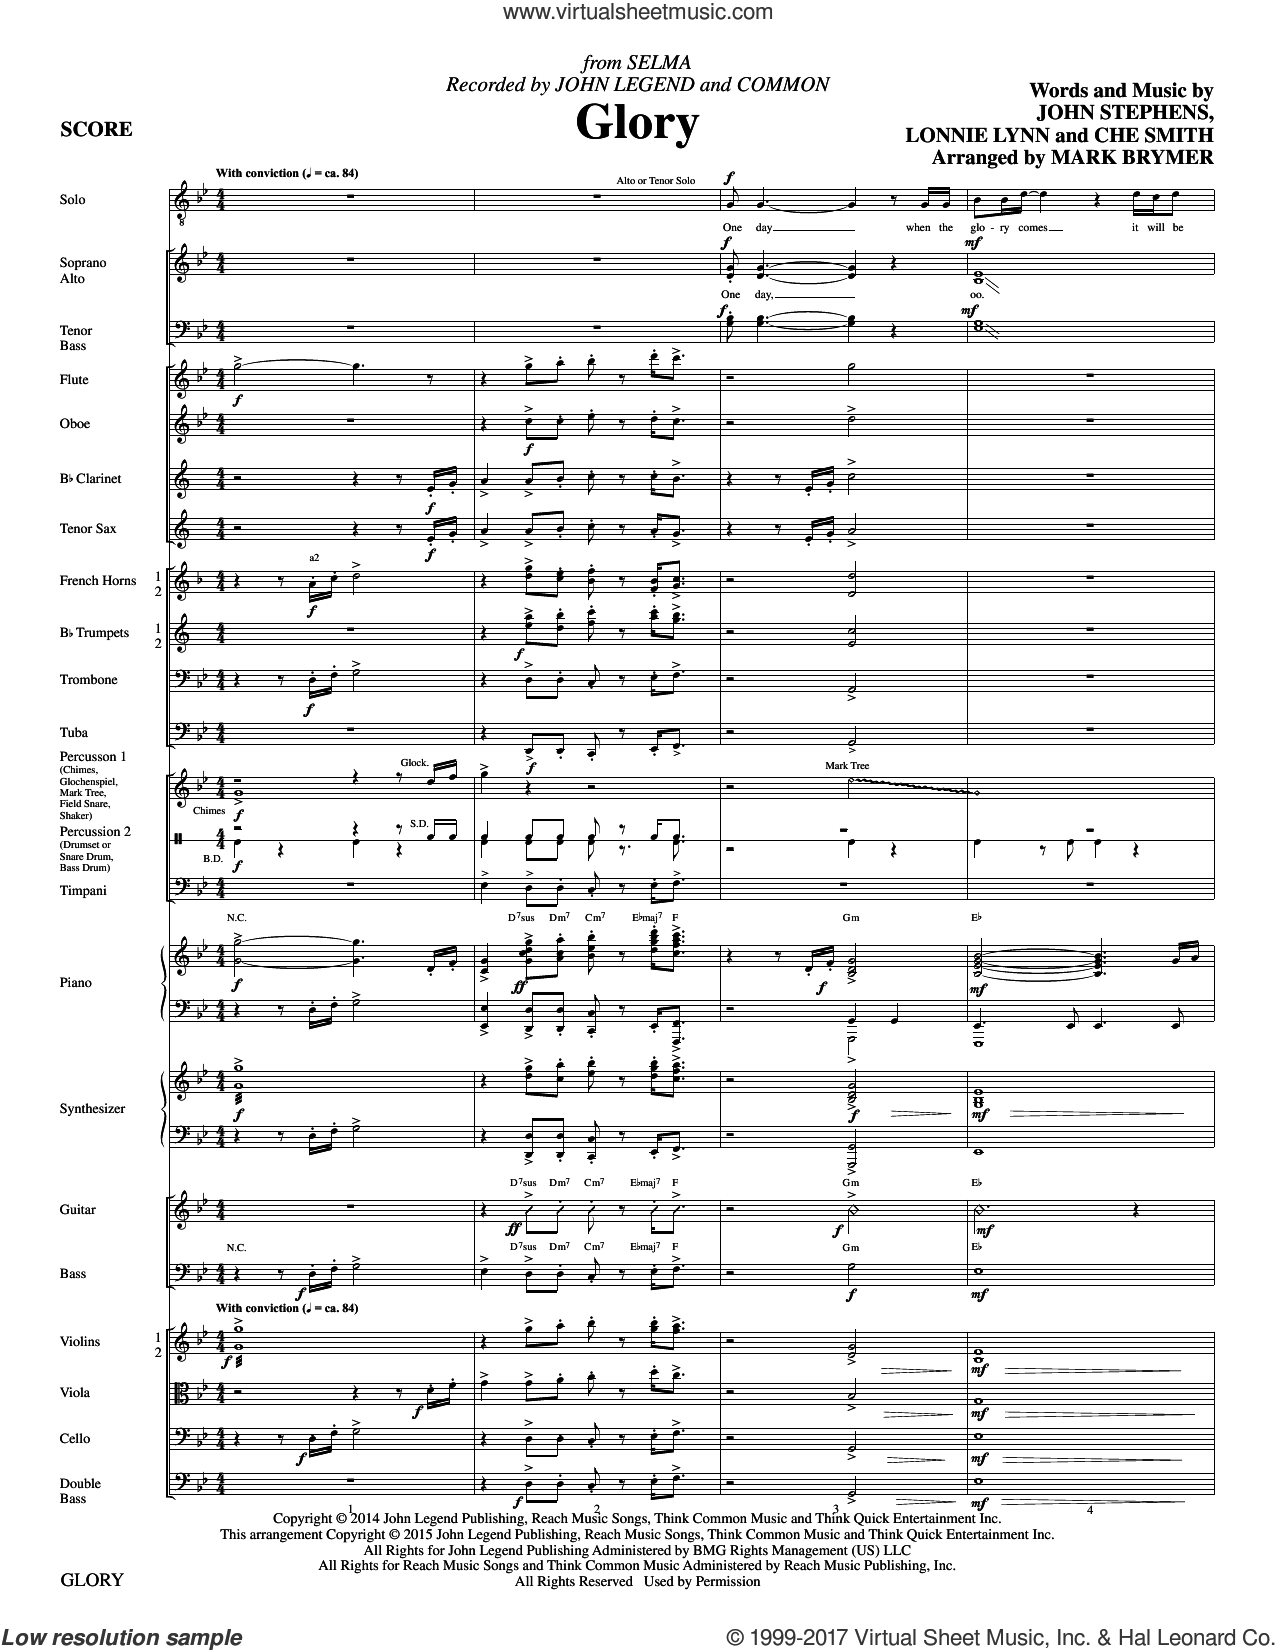 Glory (COMPLETE) sheet music for orchestra/band by Mark Brymer, Che Smith, Common & John Legend, John Stephens and Lonnie Lynn, intermediate skill level